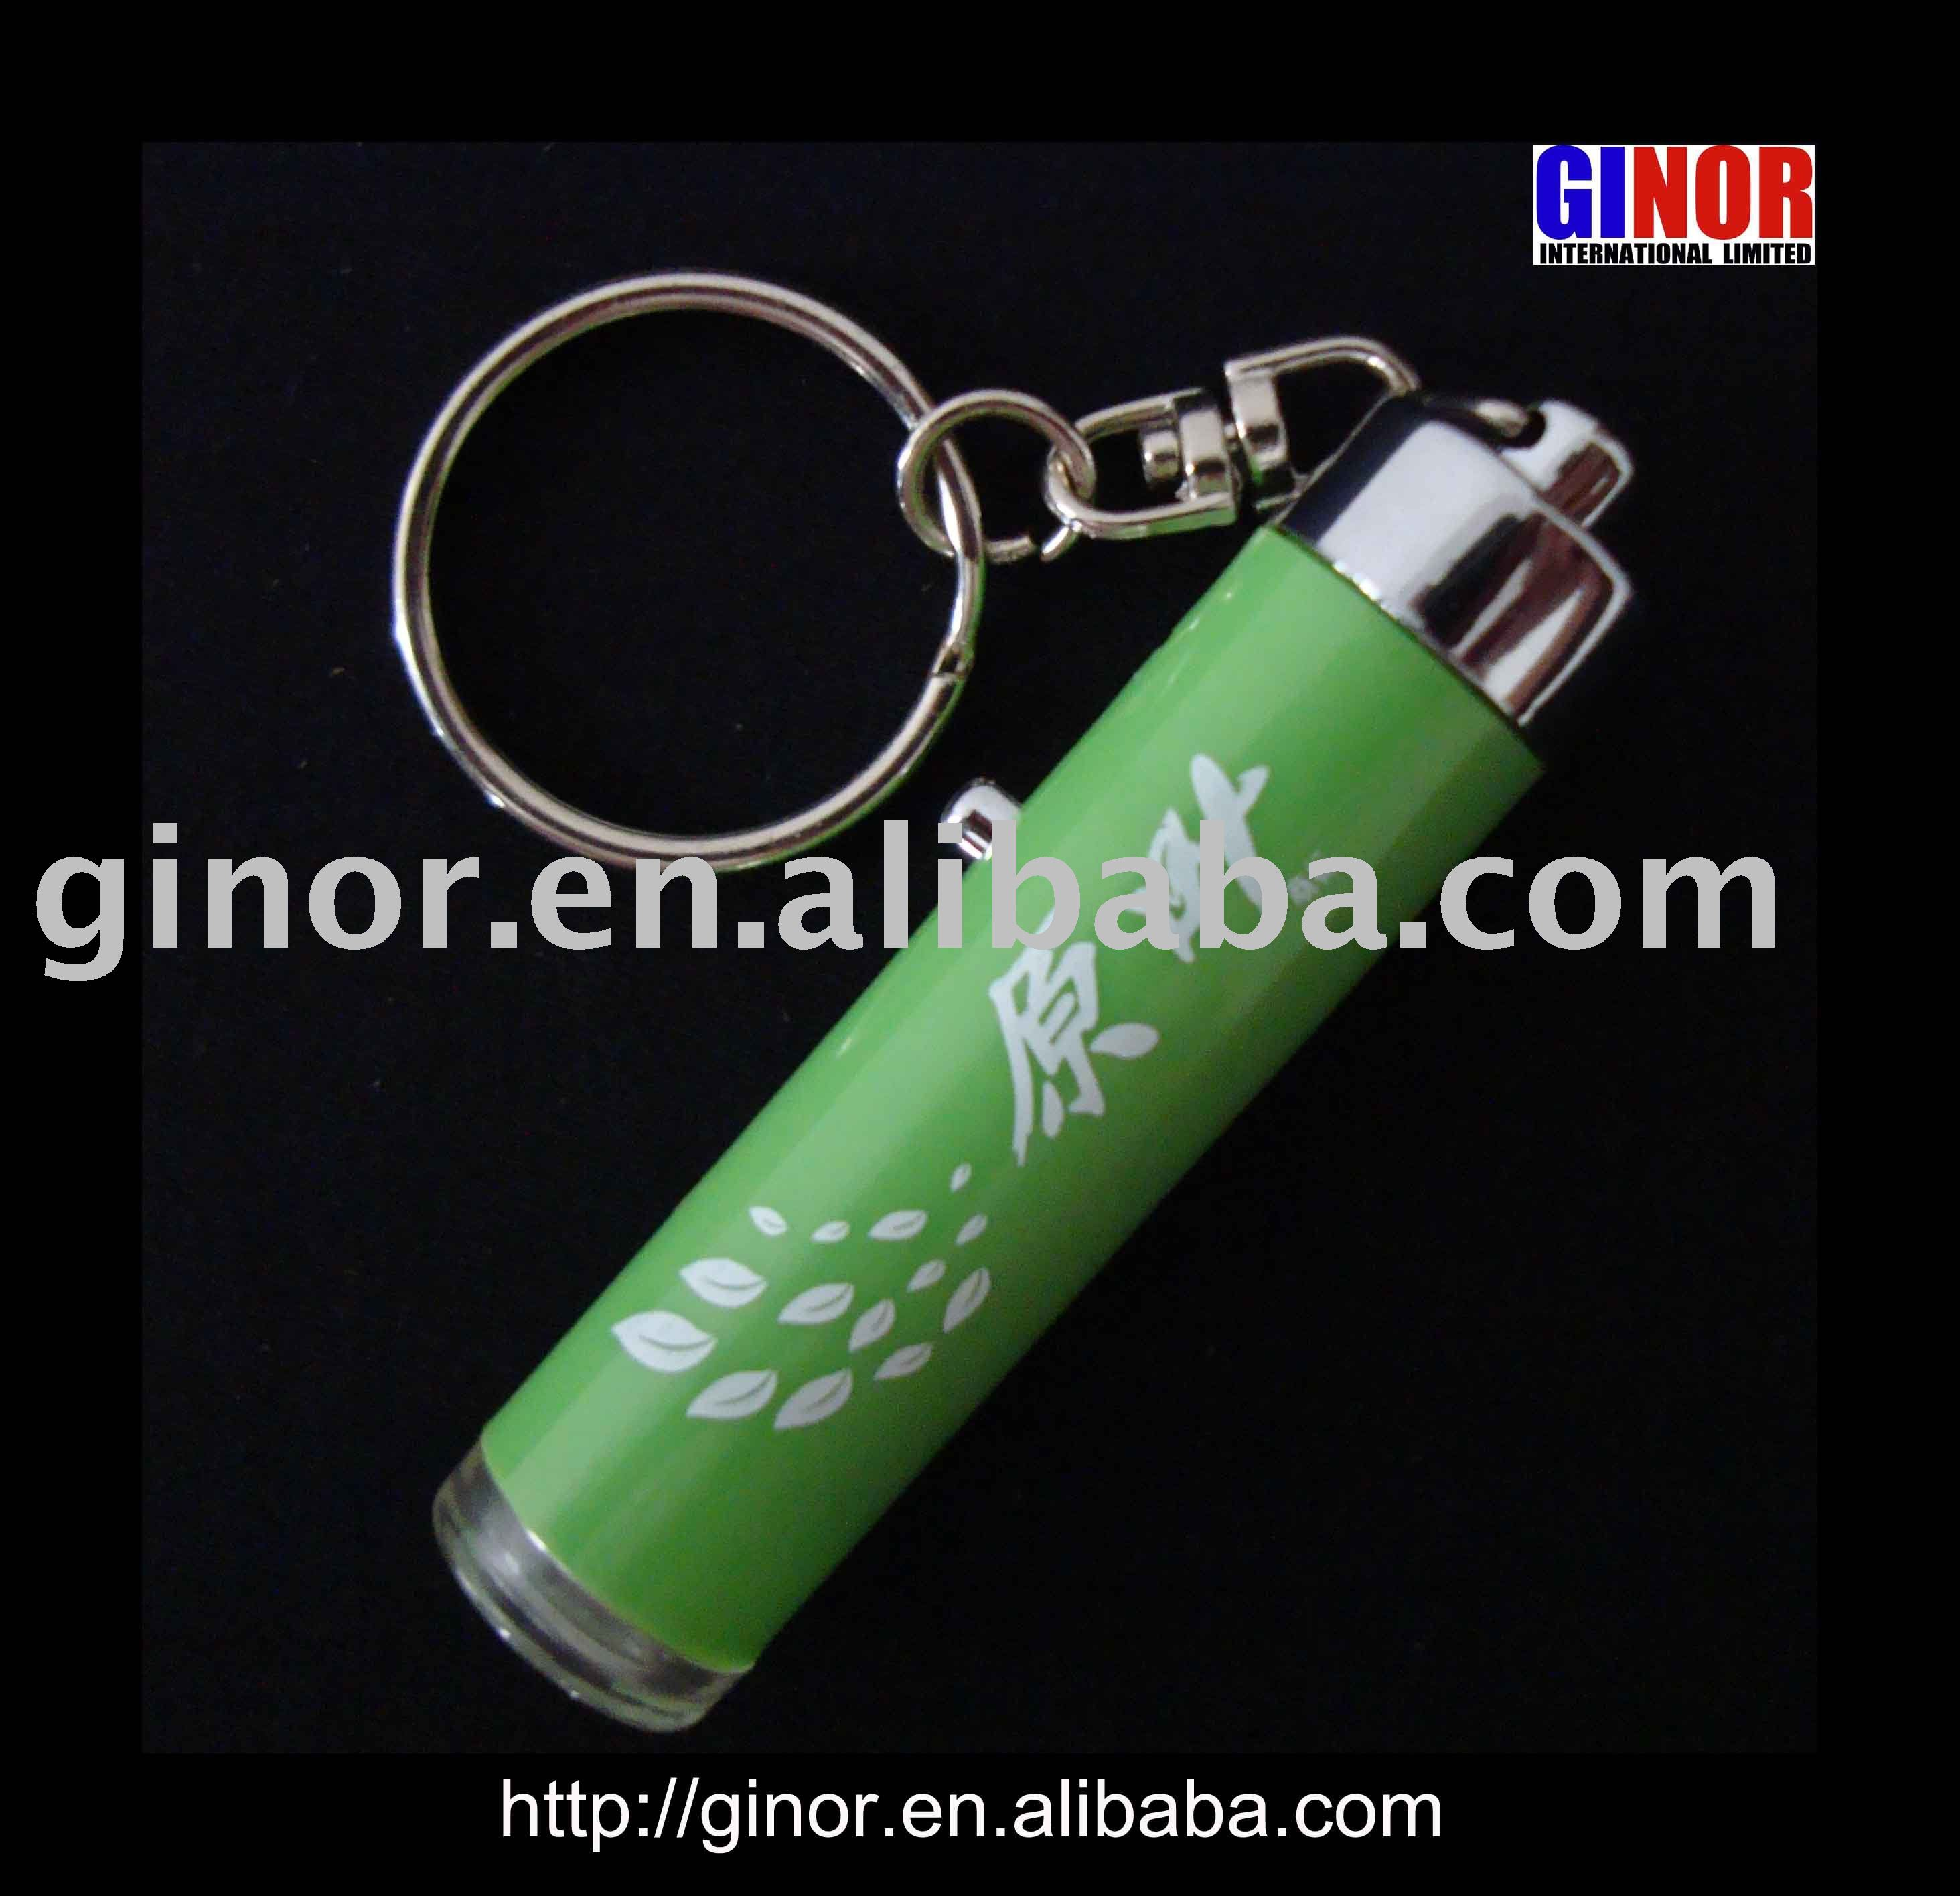 Led projector keychain/key holder/promotion gifts